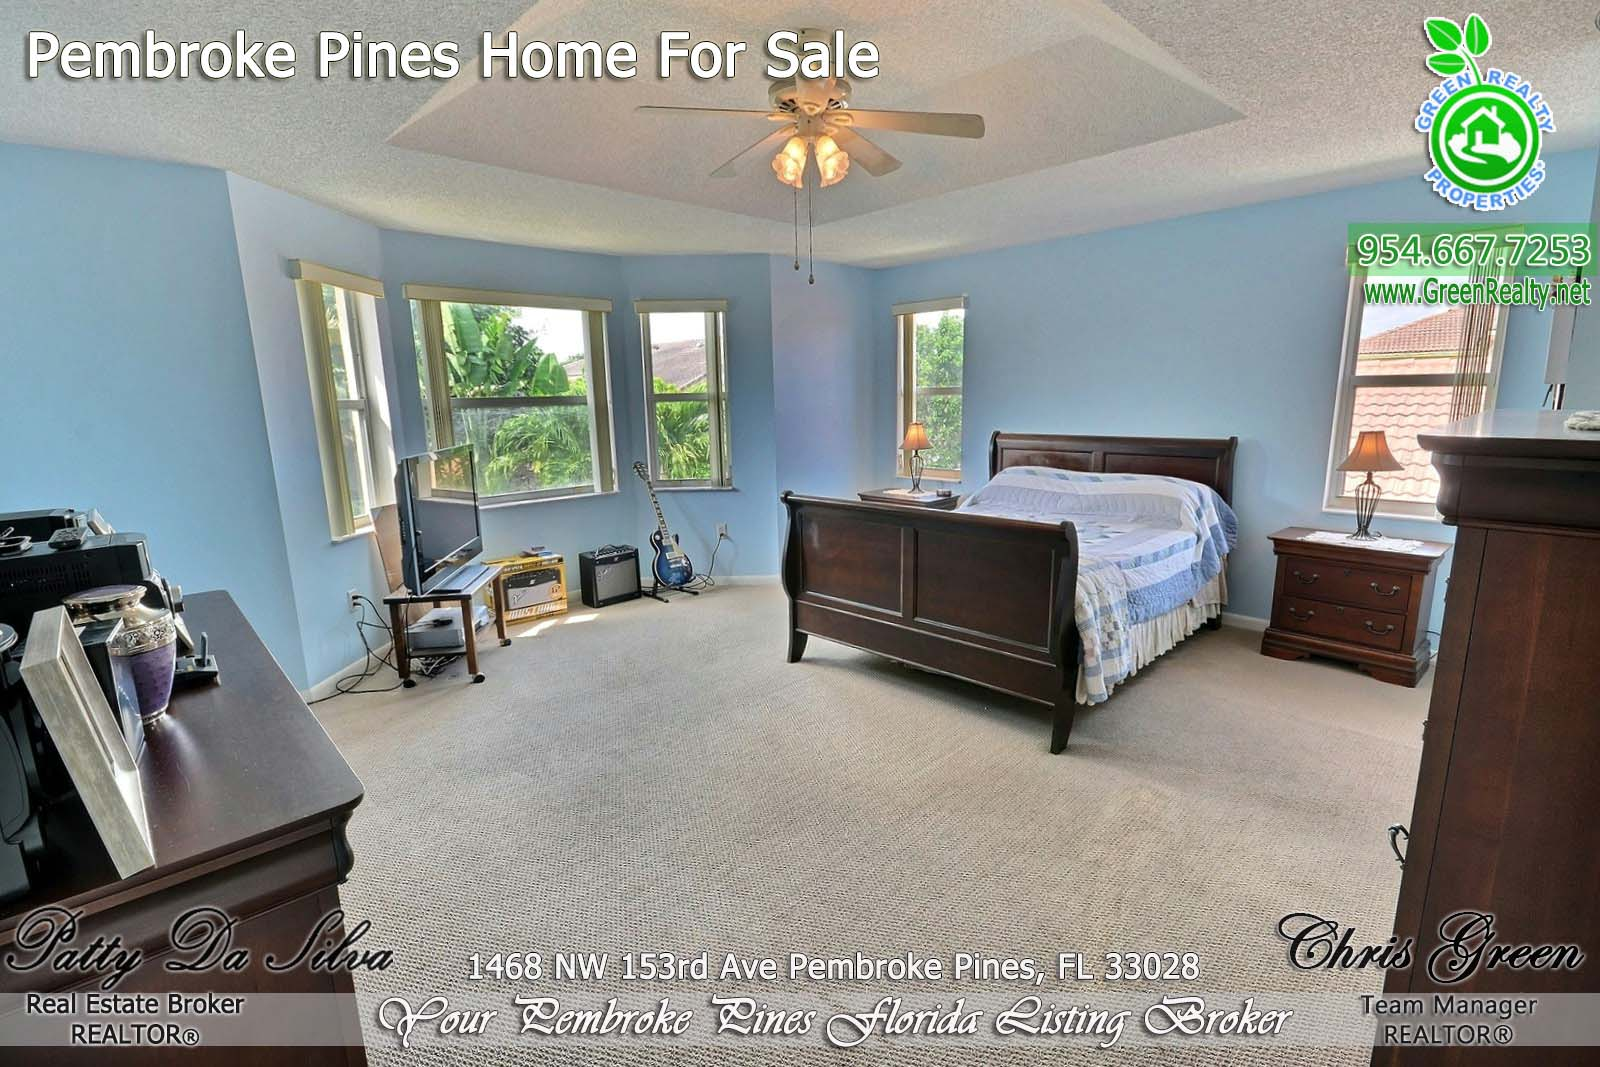 18 Patty Da SIlva SELLS Pembroke Pines Homes (2)